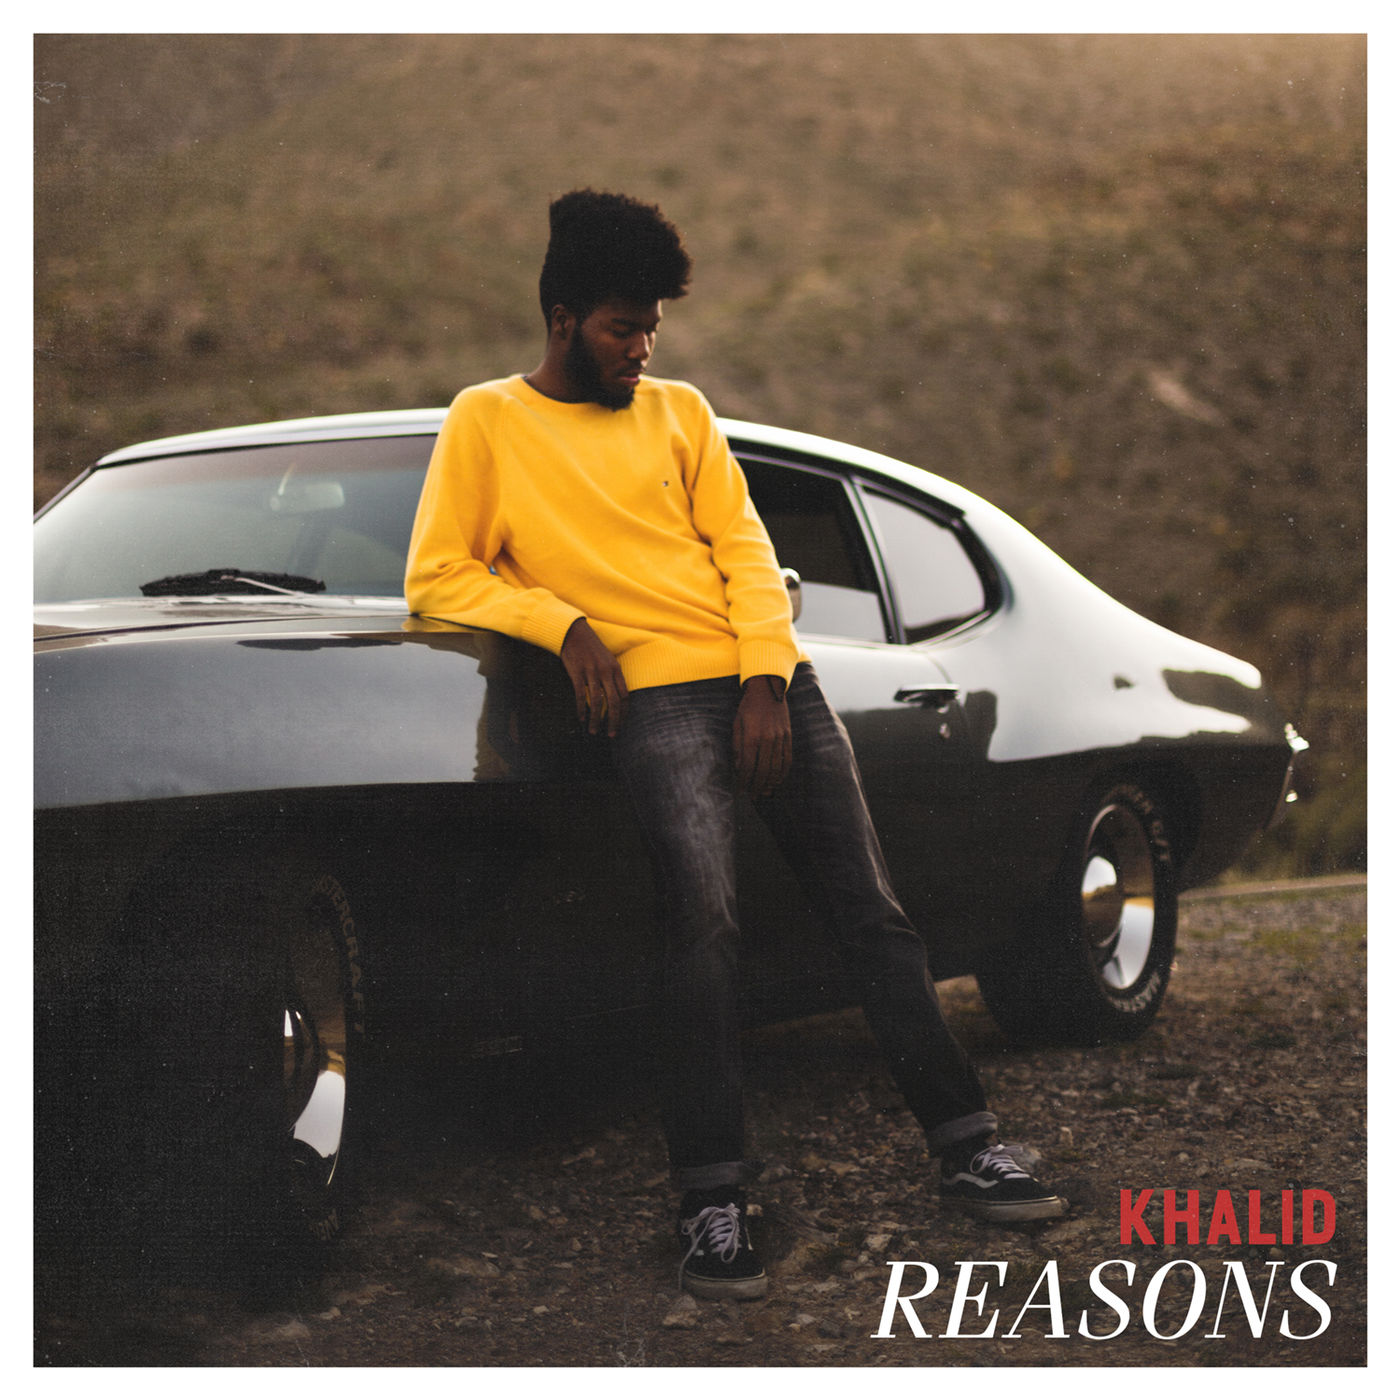 Khalid - Reasons - Single Cover